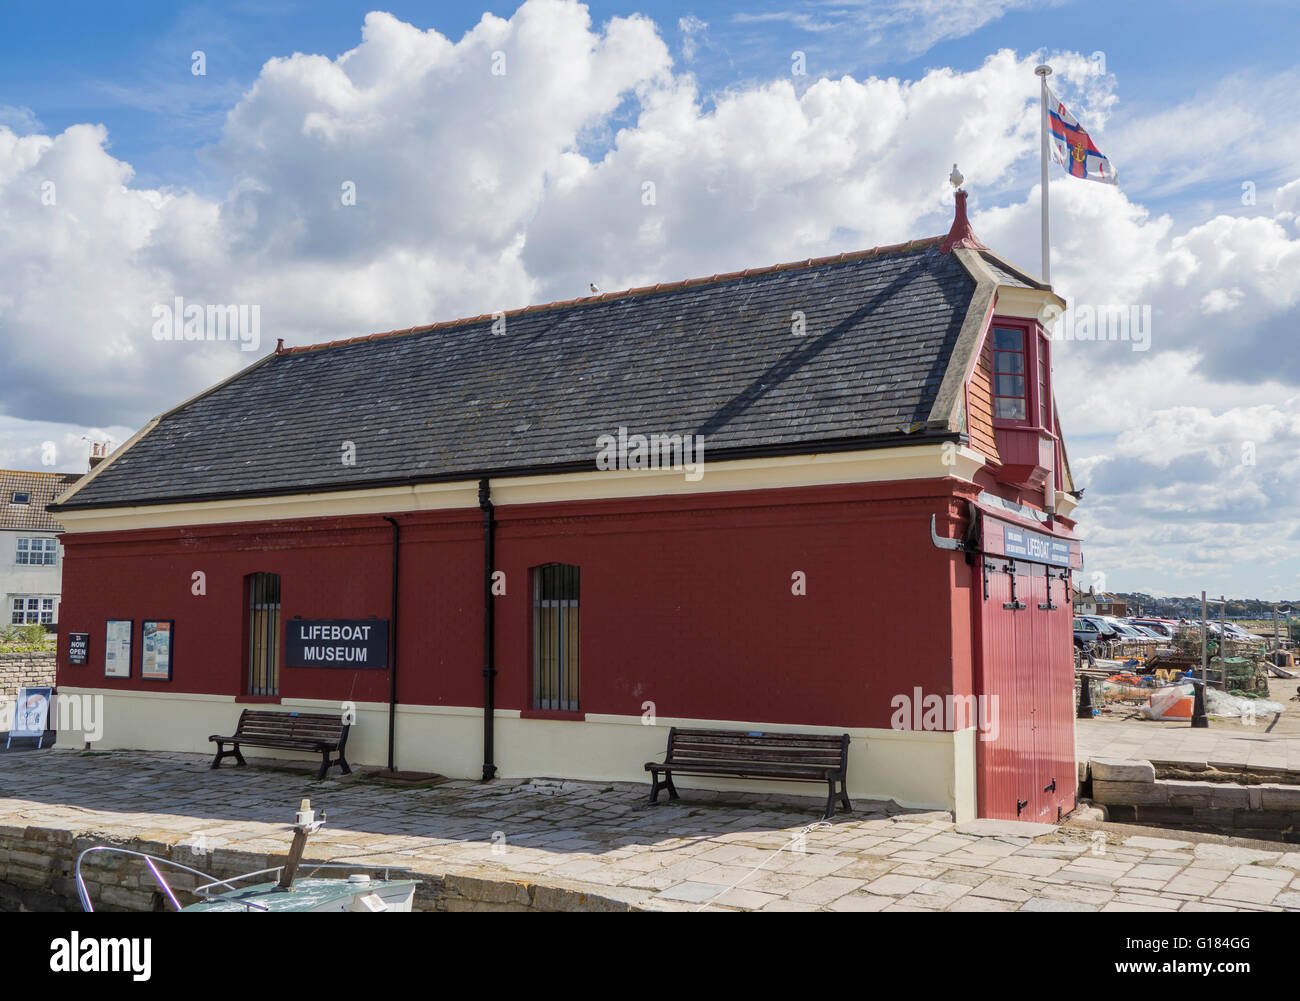 Poole Old Lifeboat Museum Boathouse and Shop, Fisherman's Dock, Poole Quay,  Dorset, UK - Stock Image